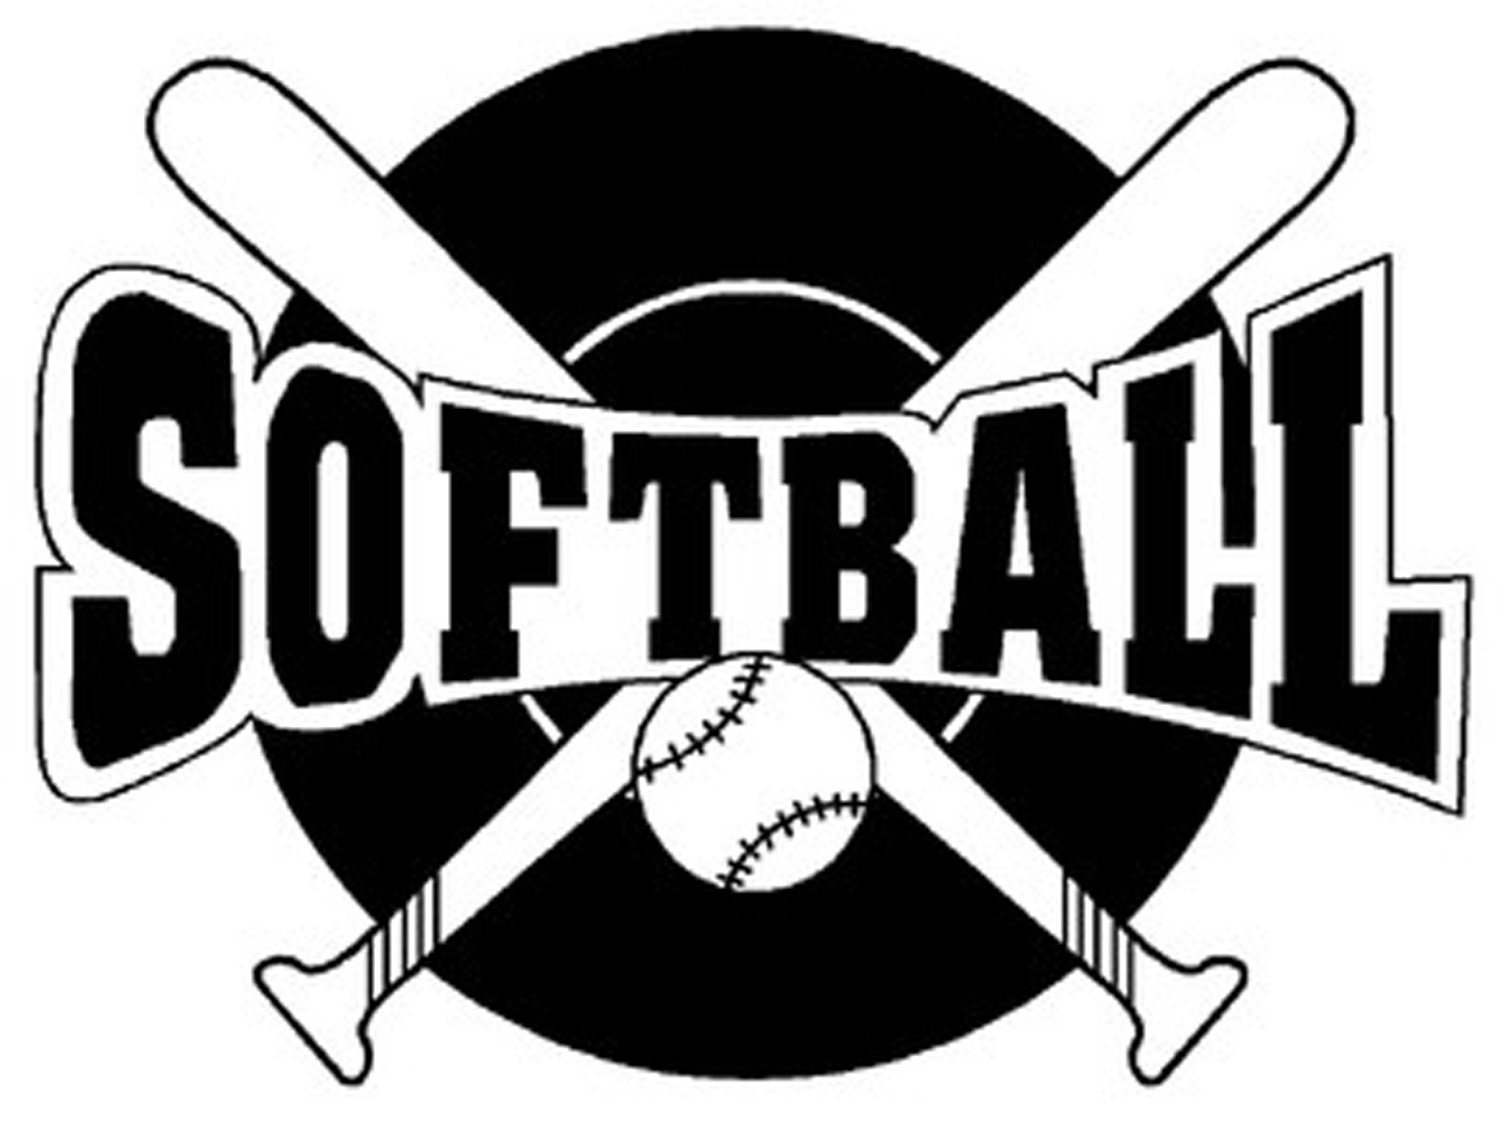 Church softball clipart vector freeuse library Free collection of Softball clipart church. Download transparent ... vector freeuse library